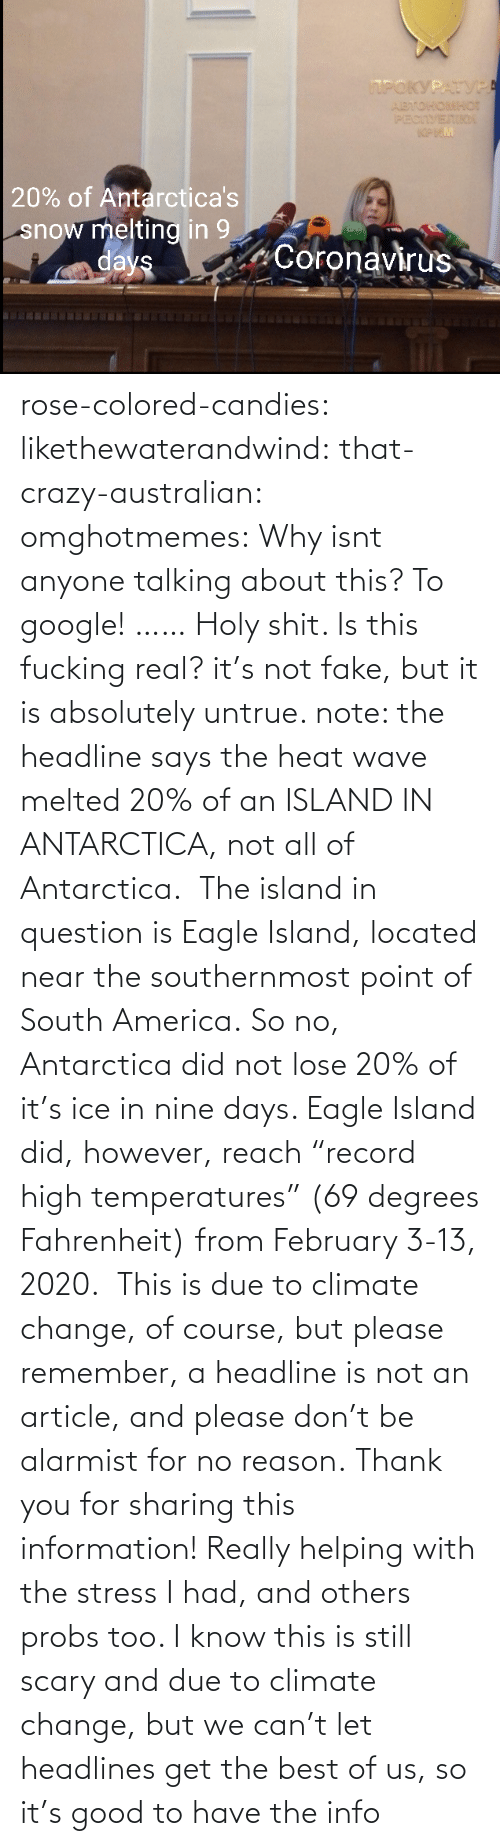 "Due: rose-colored-candies: likethewaterandwind:   that-crazy-australian:  omghotmemes:  Why isnt anyone talking about this?   To google!  ……   Holy shit. Is this fucking real?   it's not fake, but it is absolutely untrue. note: the headline says the heat wave melted 20% of an ISLAND IN ANTARCTICA, not all of Antarctica.  The island in question is Eagle Island, located near the southernmost point of South America. So no, Antarctica did not lose 20% of it's ice in nine days. Eagle Island did, however, reach ""record high temperatures"" (69 degrees Fahrenheit) from February 3-13, 2020.  This is due to climate change, of course, but please remember, a headline is not an article, and please don't be alarmist for no reason.    Thank you for sharing this information! Really helping with the stress I had, and others probs too. I know this is still scary and due to climate change, but we can't let headlines get the best of us, so it's good to have the info"